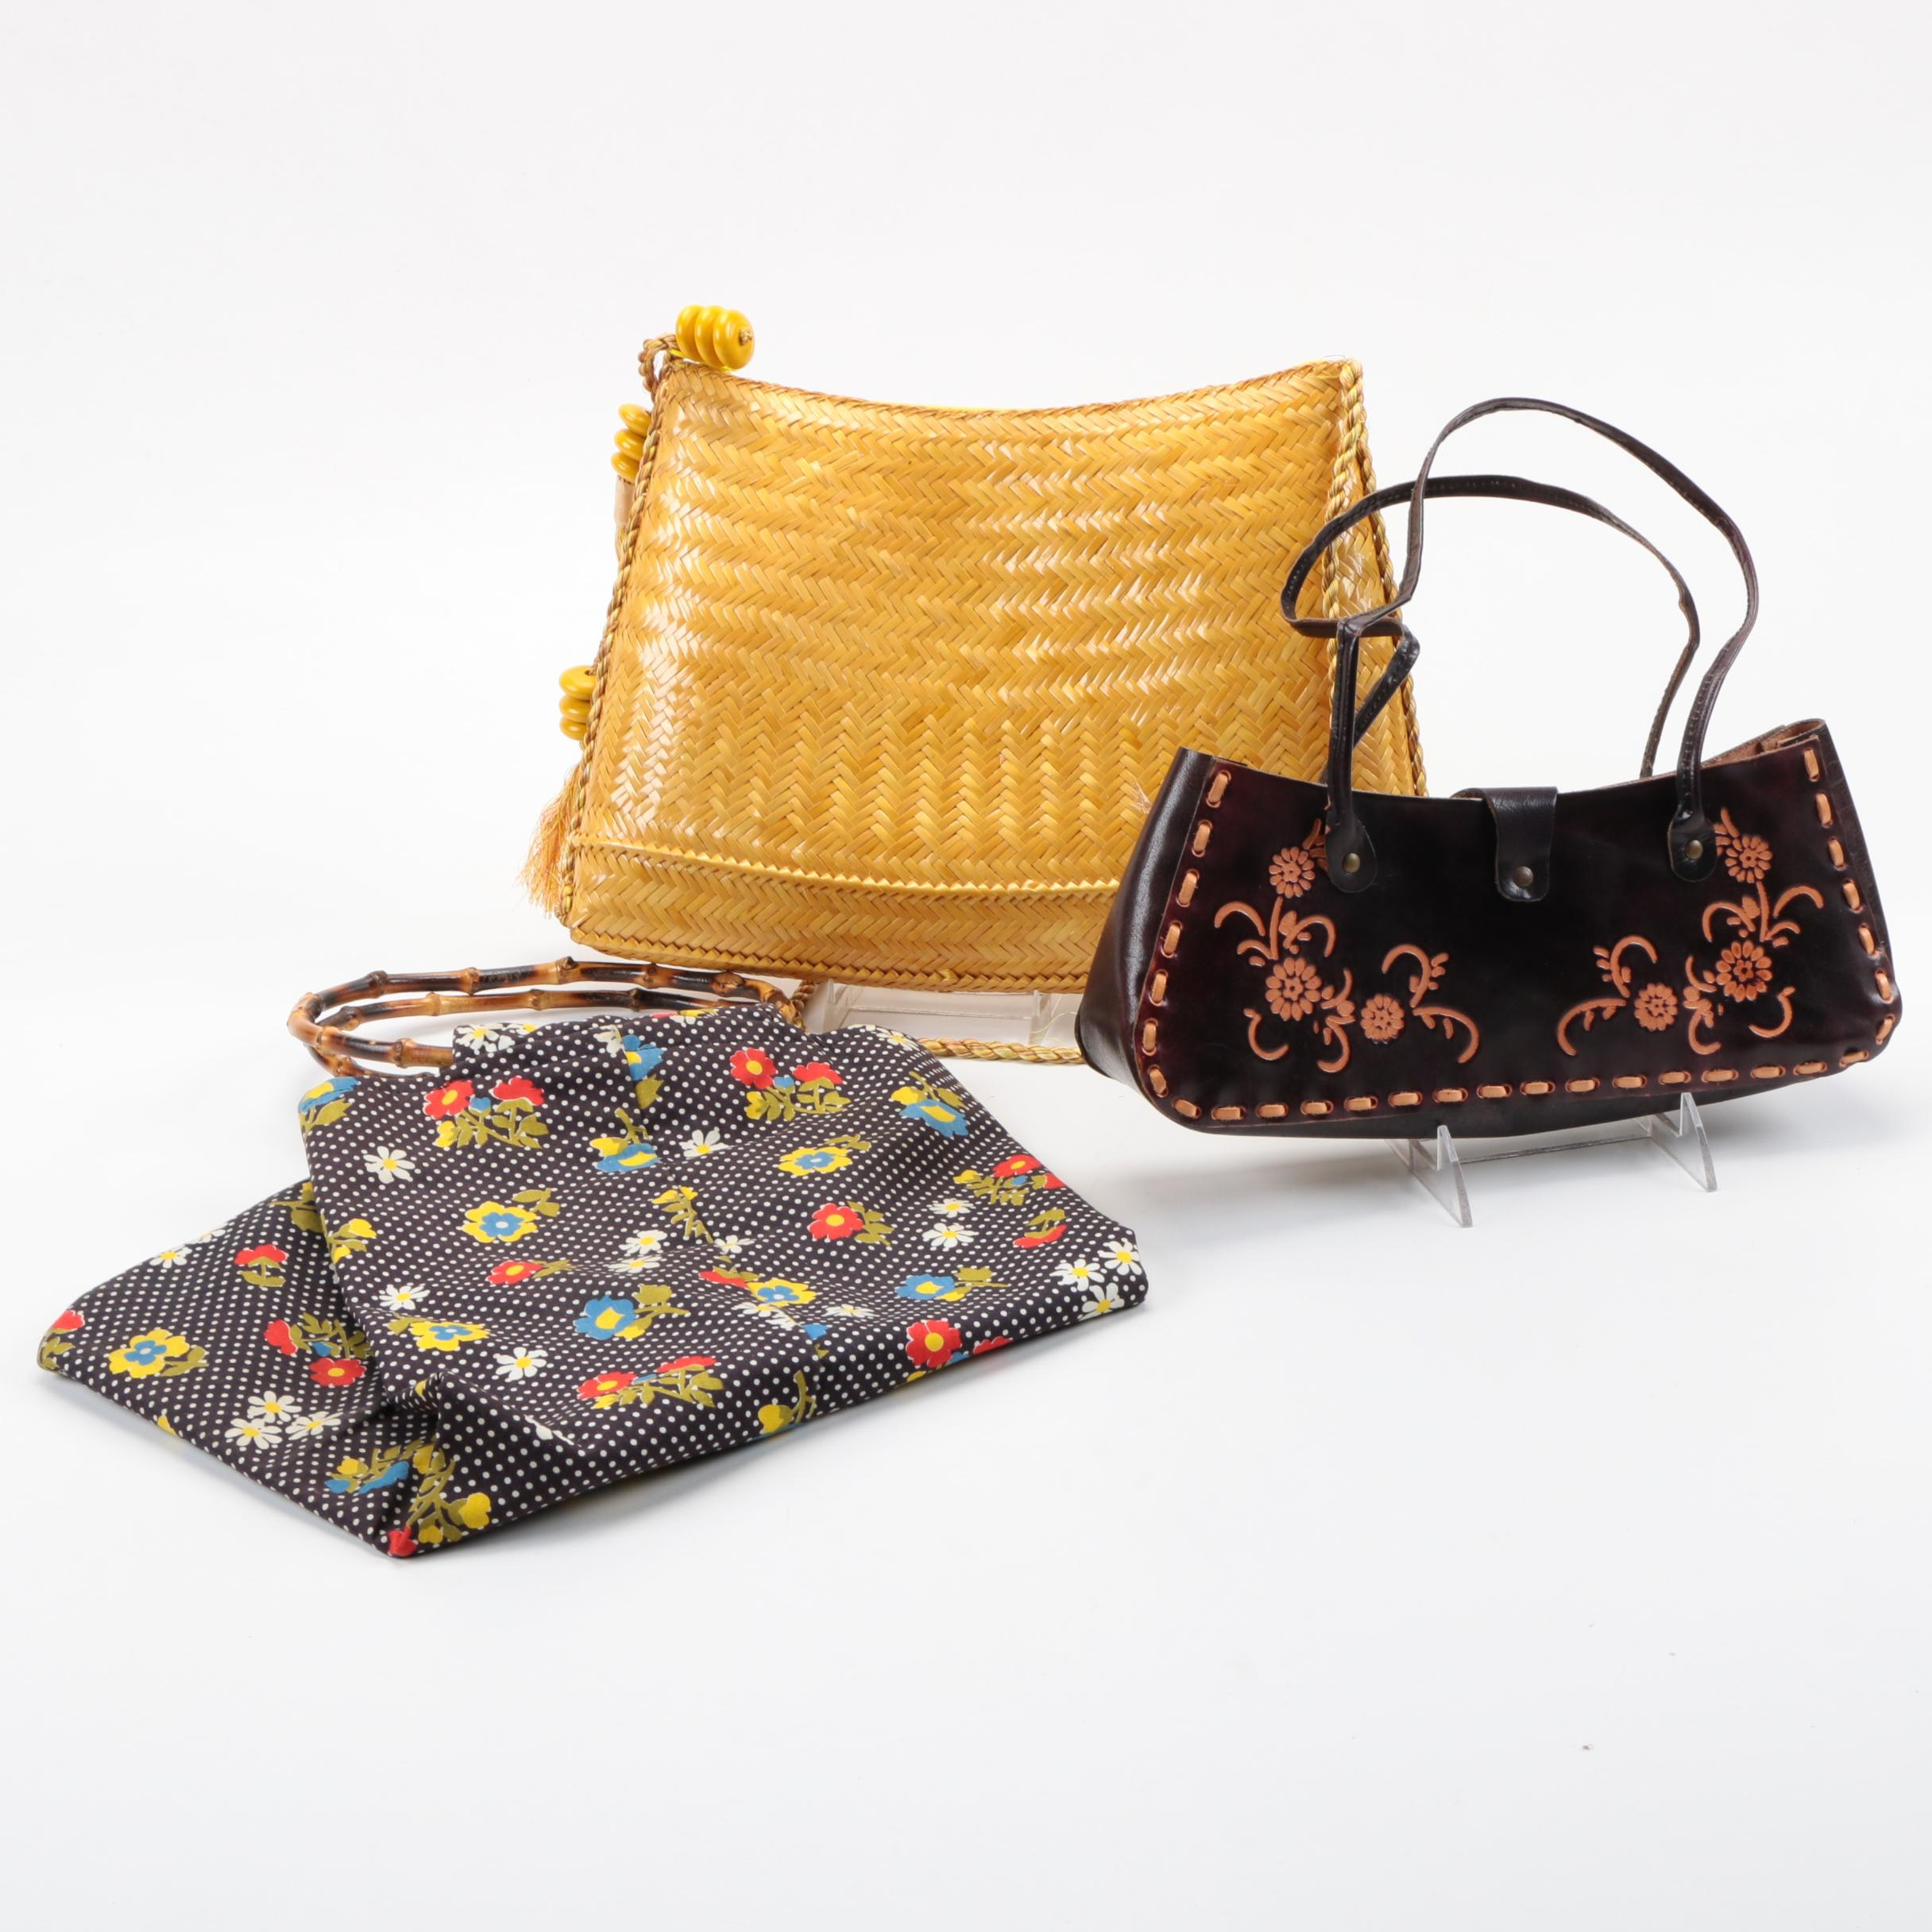 1970s Vintage Handbags Including Tooled Leather